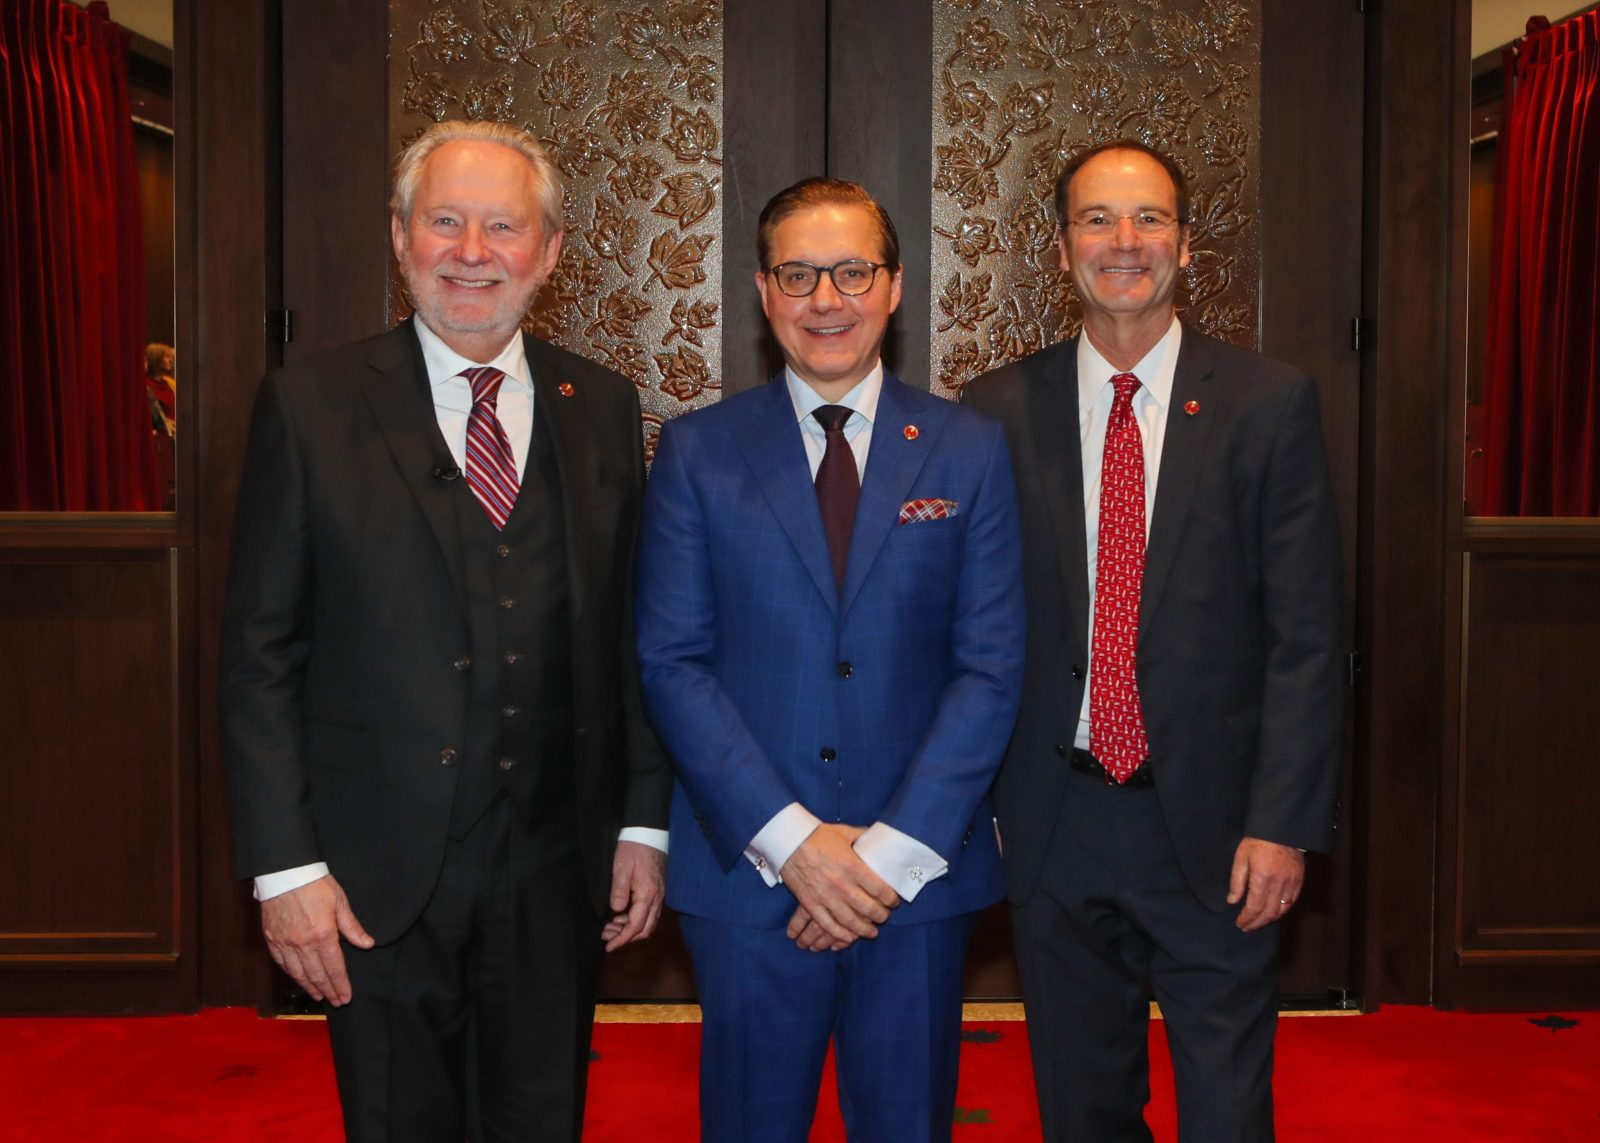 New independent Senator welcomed to Red Chamber